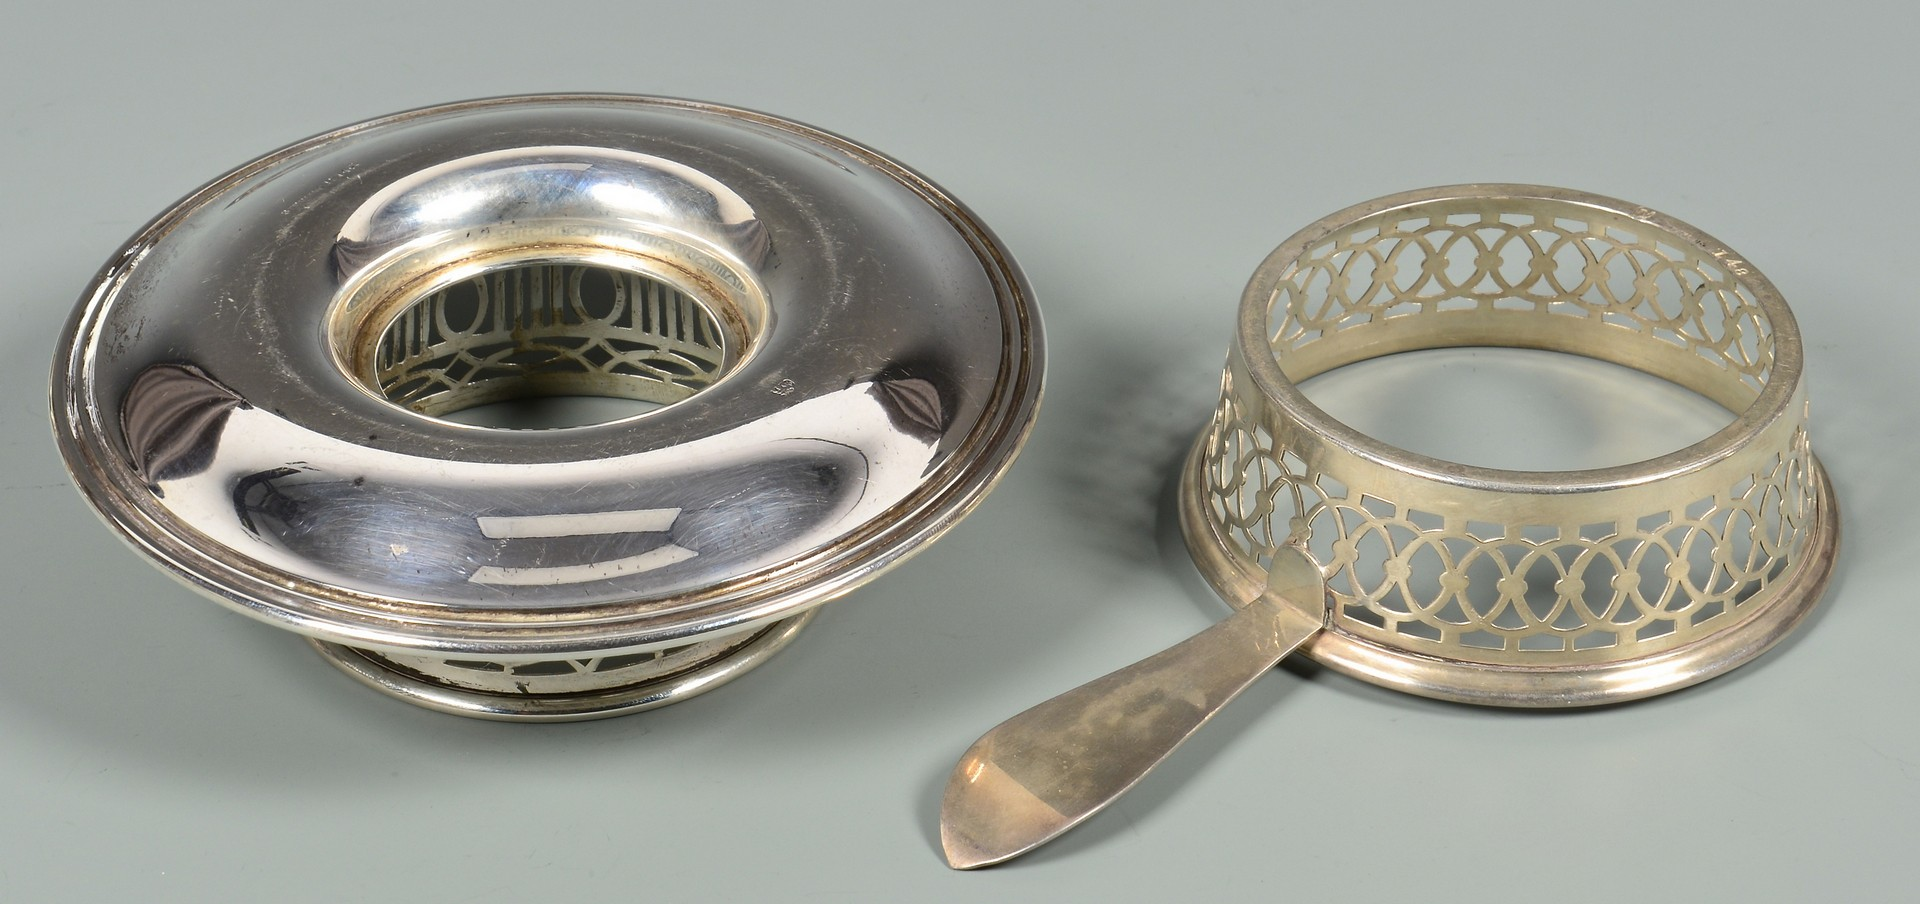 Lot 338: 15 Sterling Cup Holders w/ Porcelain Liners